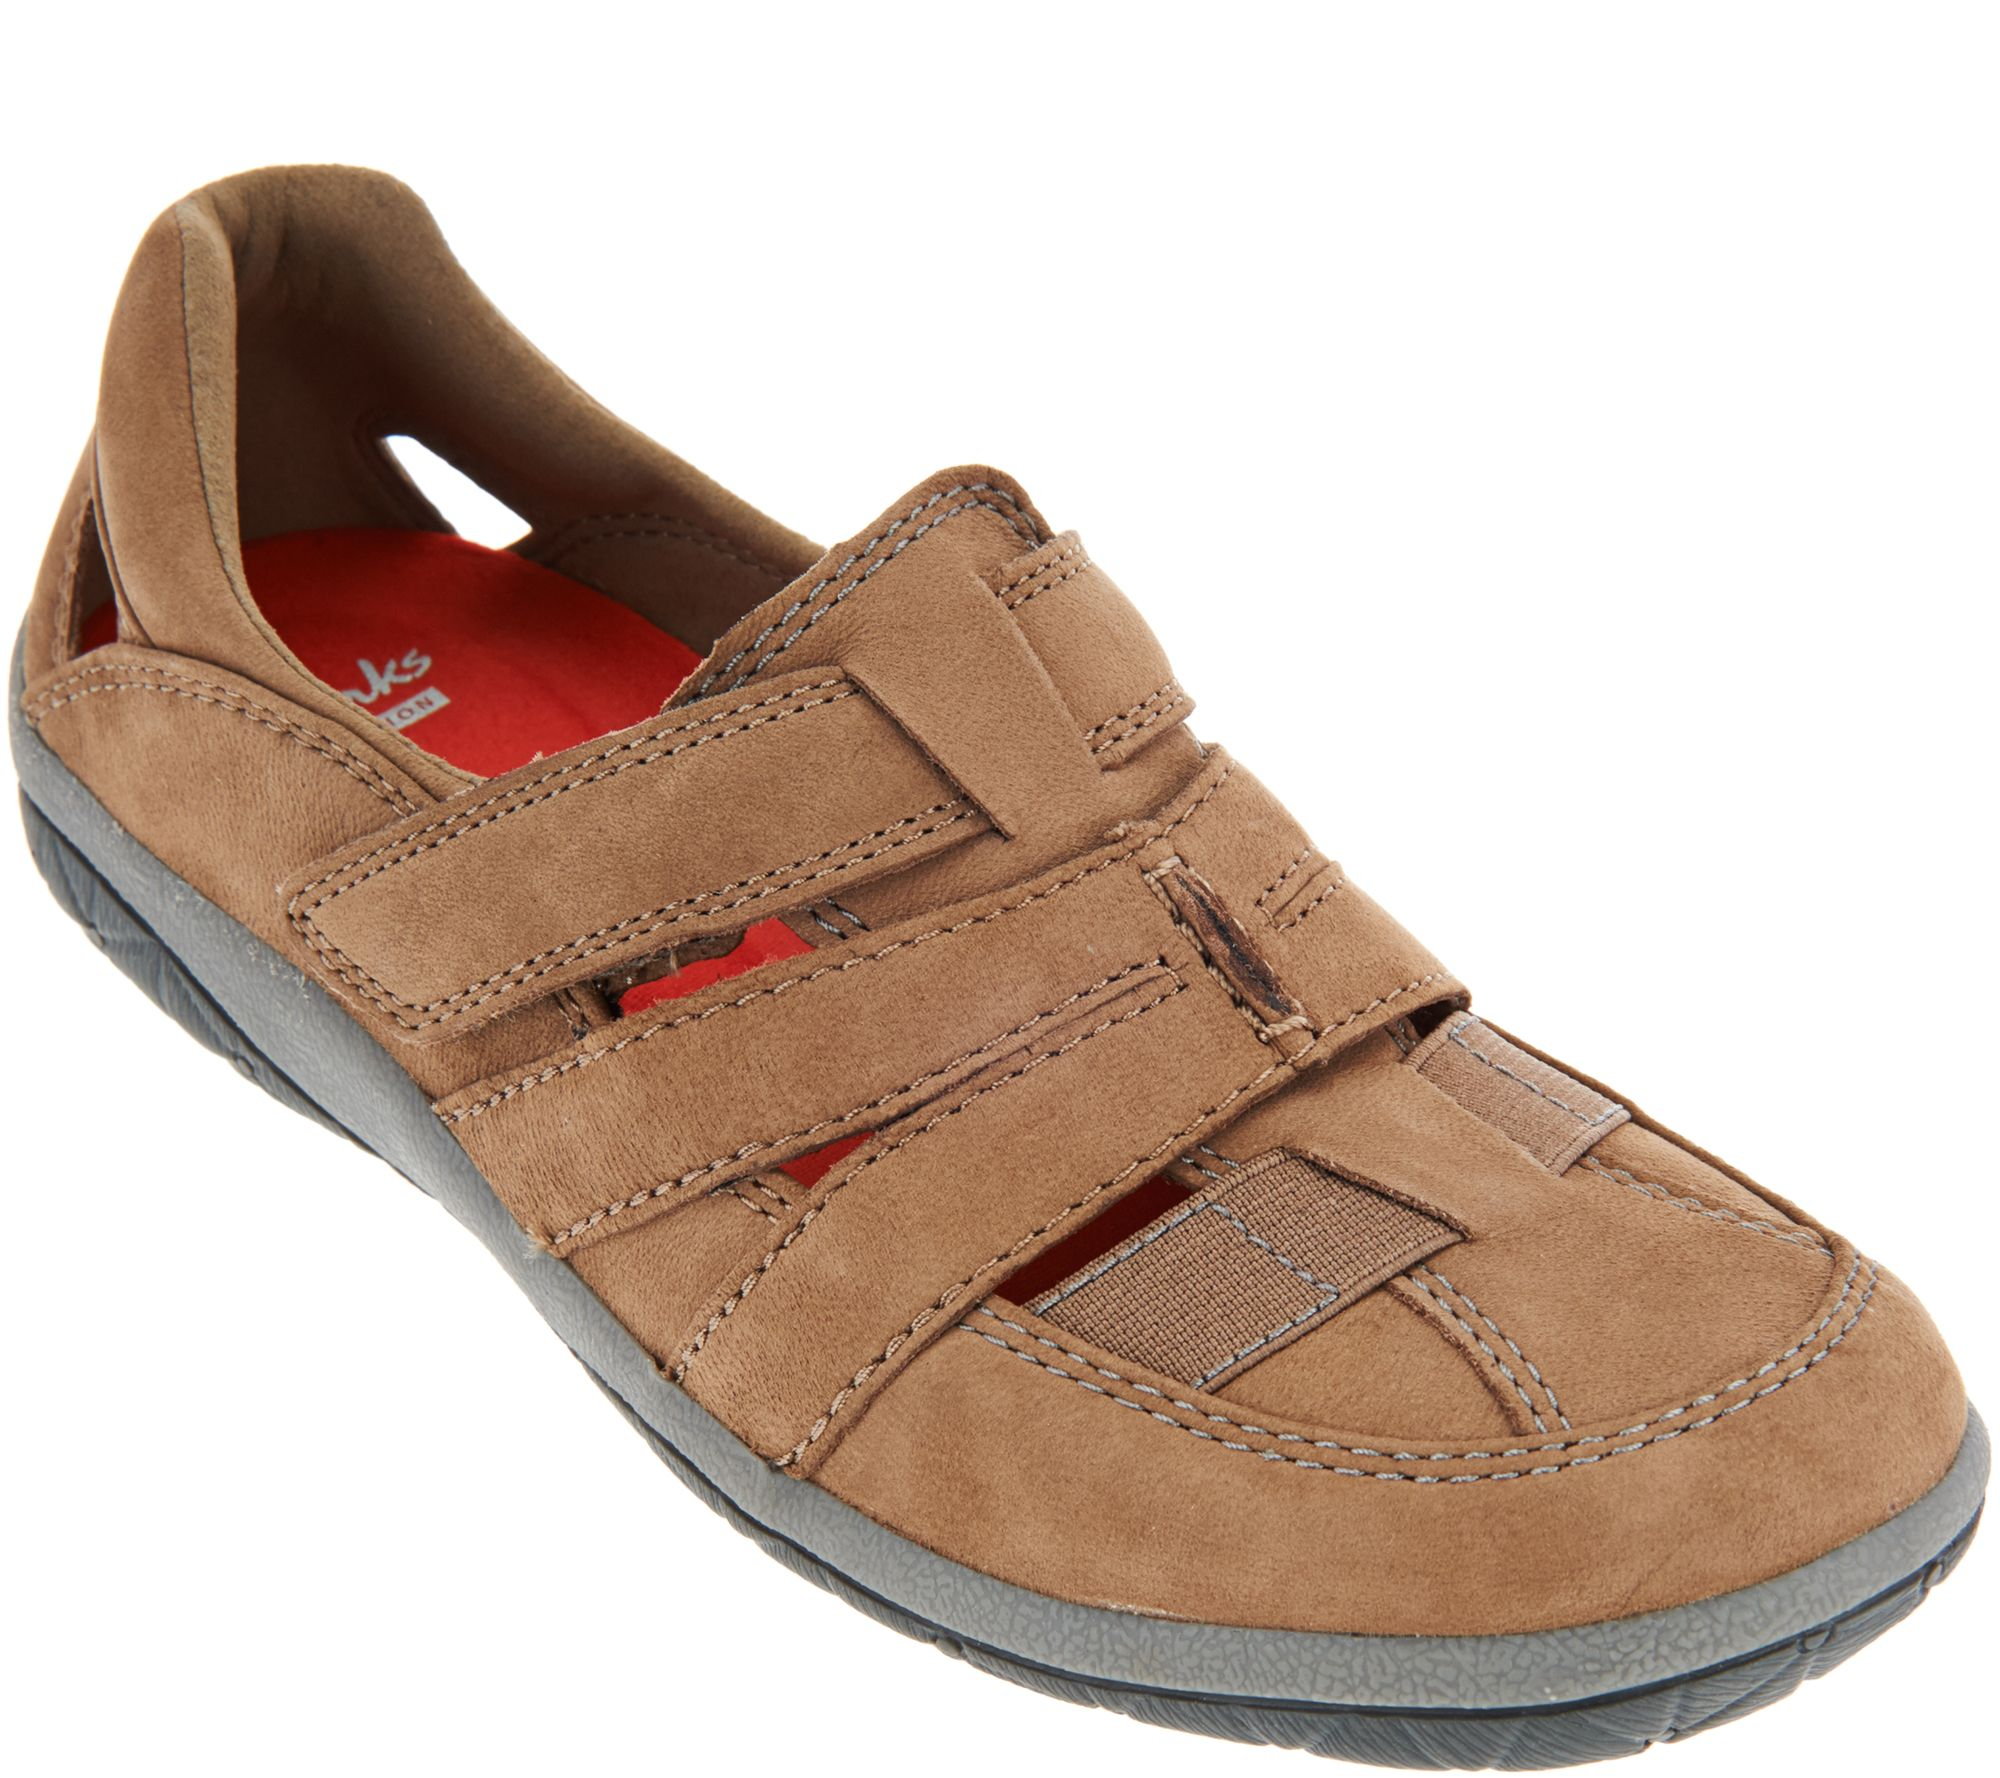 clarks collection nubuck athletic shoes teffa adorn